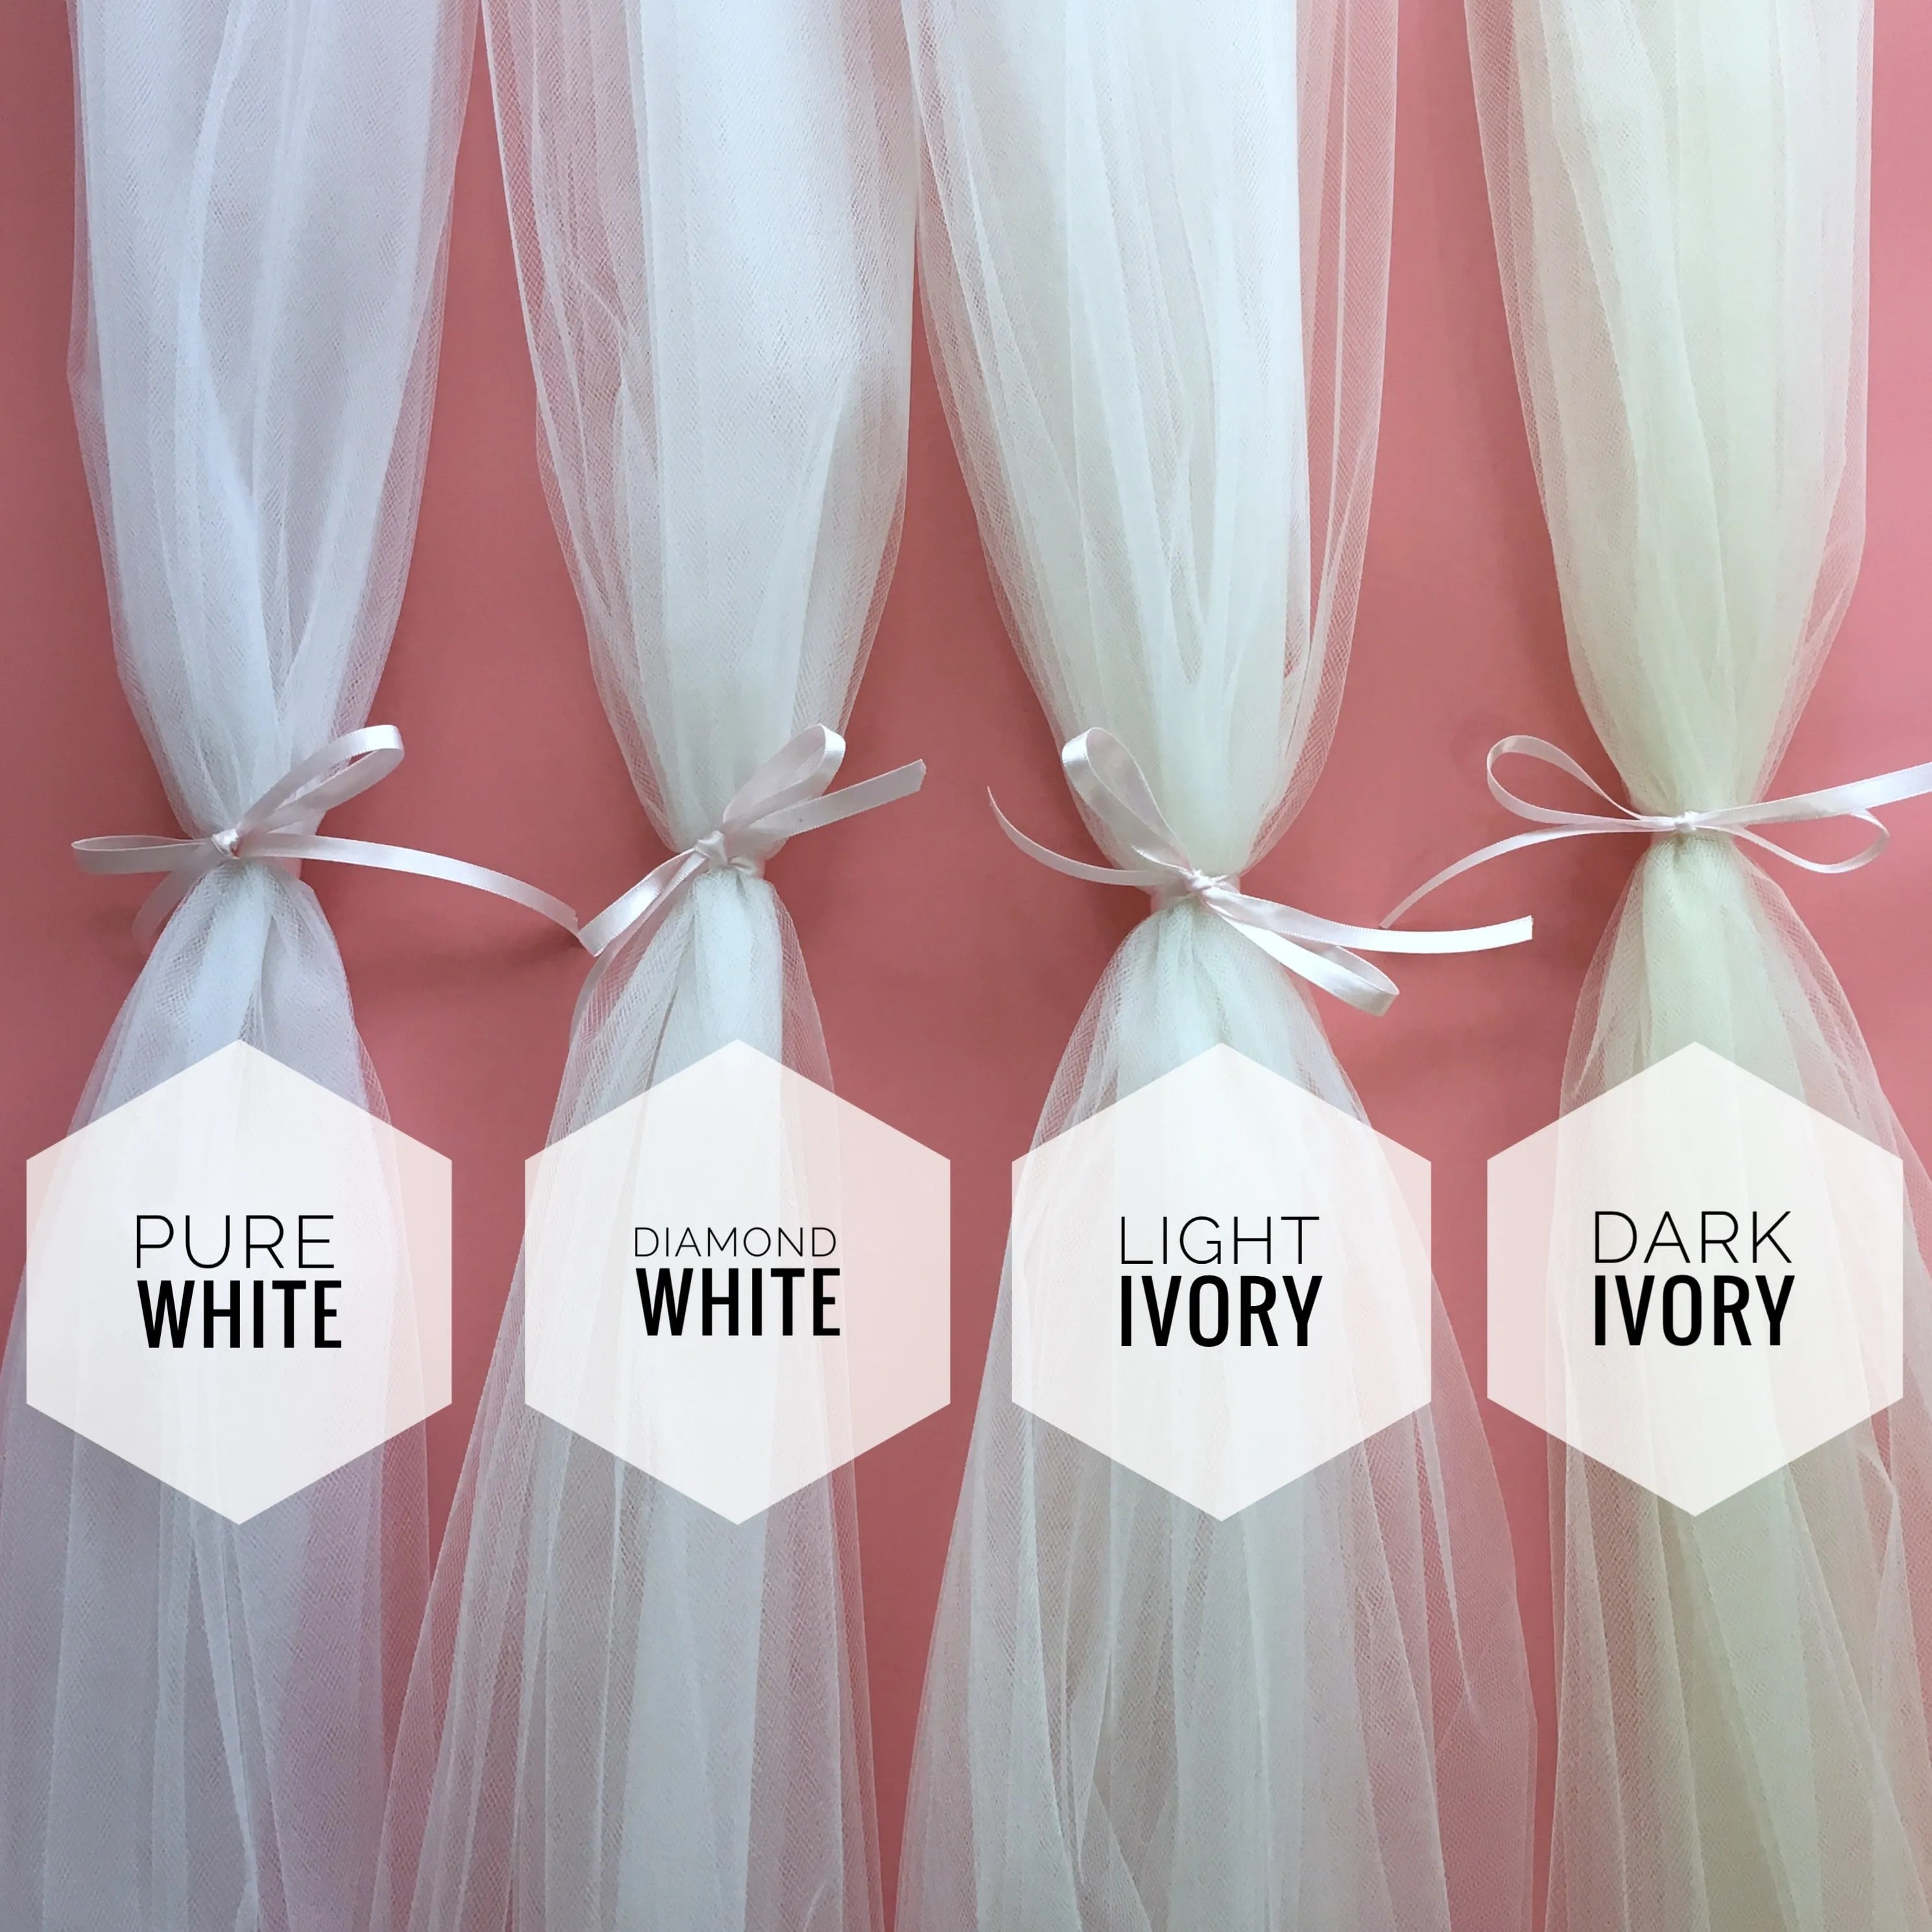 White to dark ivory - veil colour guide